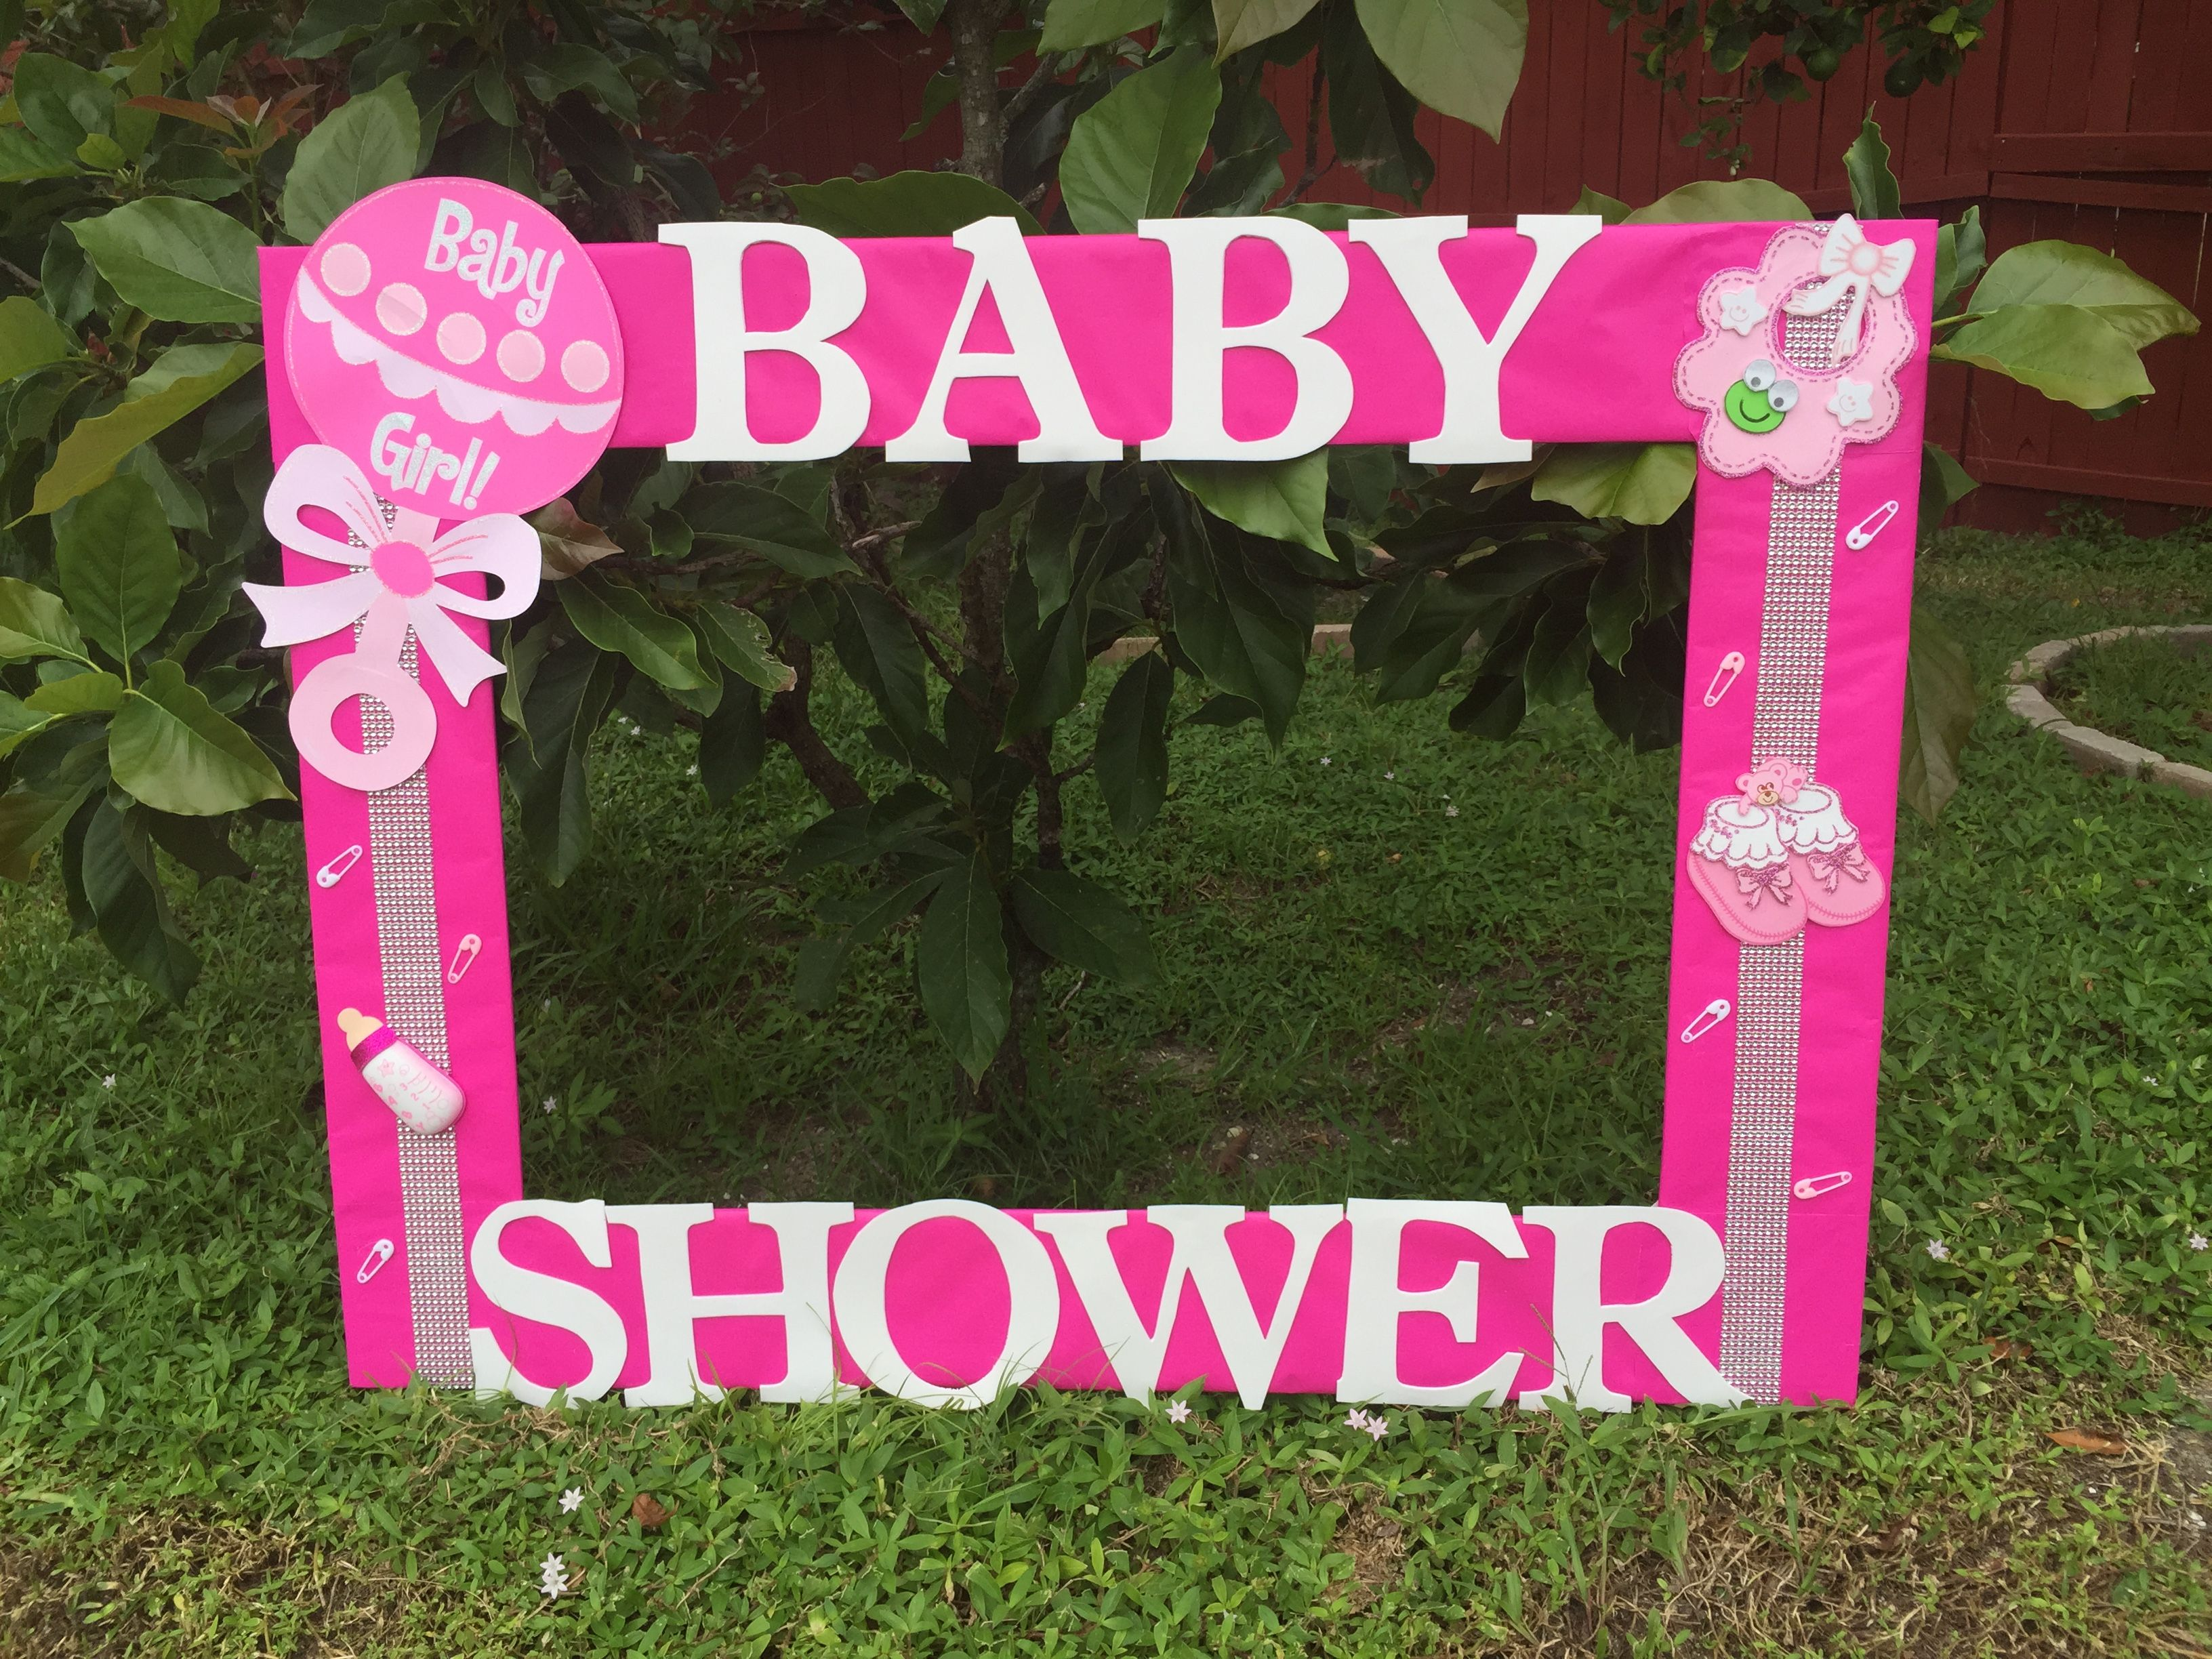 Bay shower baby girl photo frame cuadro tematico made by thelma bay shower baby girl photo frame cuadro tematico made by thelma villa jeuxipadfo Images